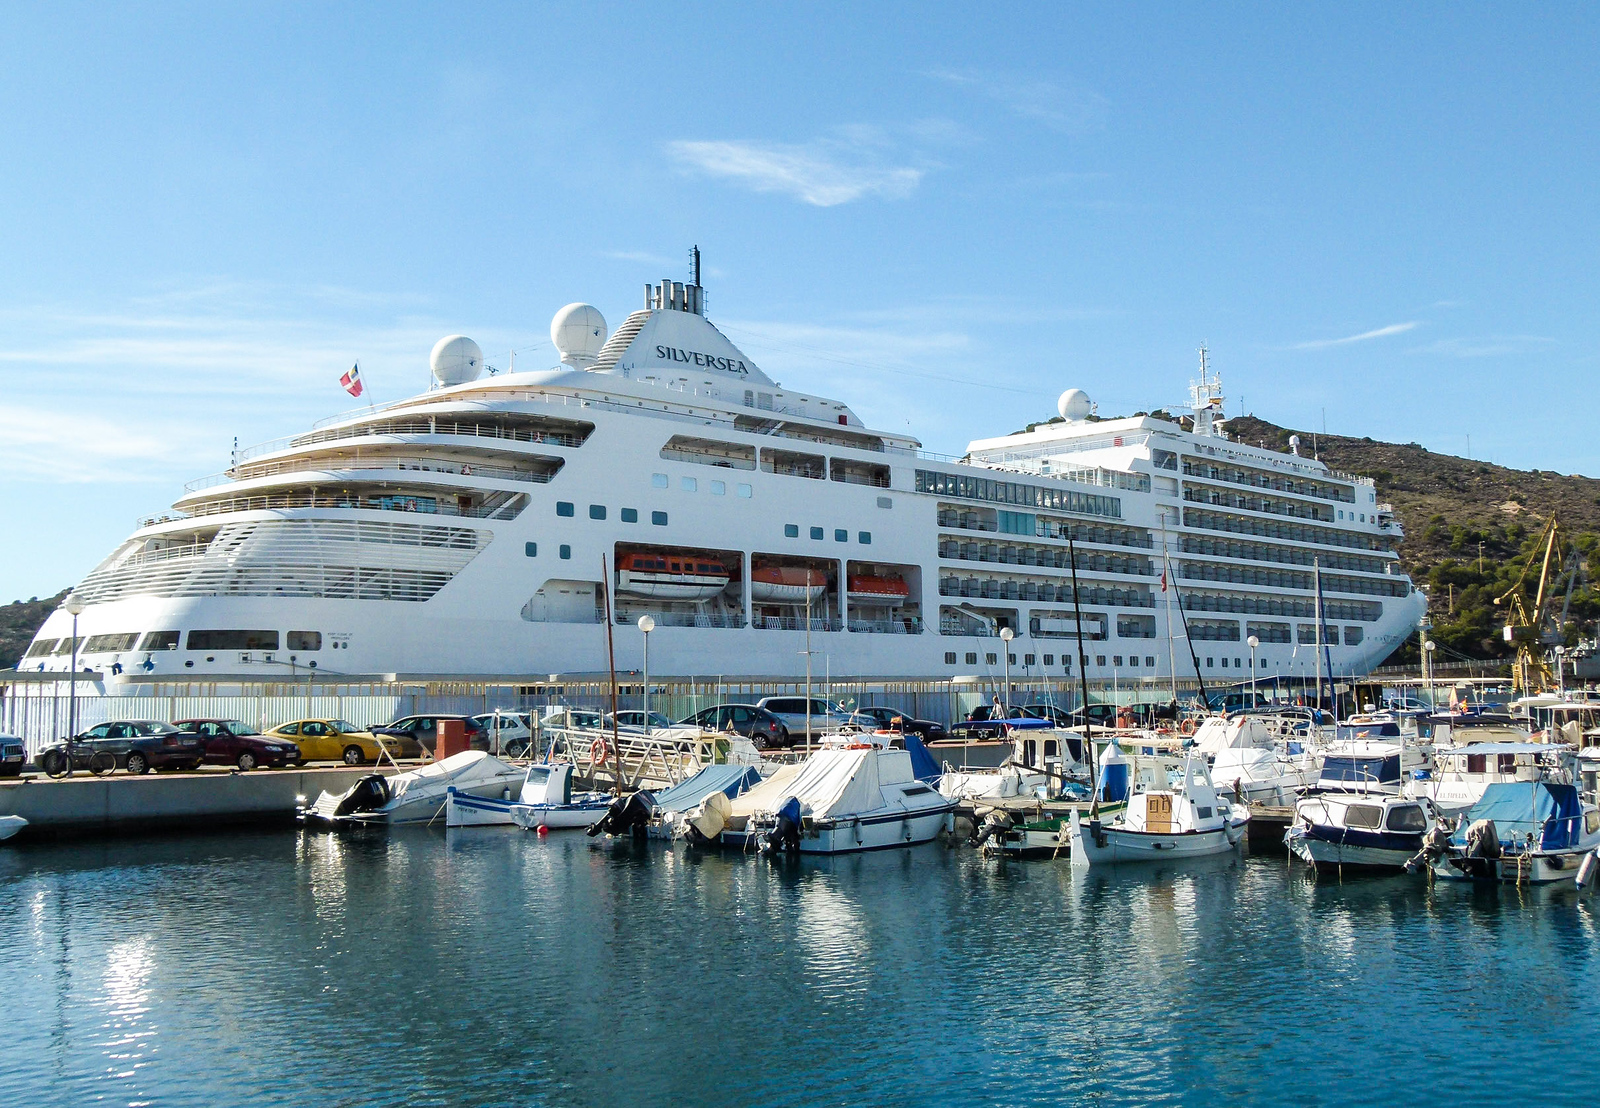 A luxury cruise ship docks next to small boats in Cartagena, Spain.